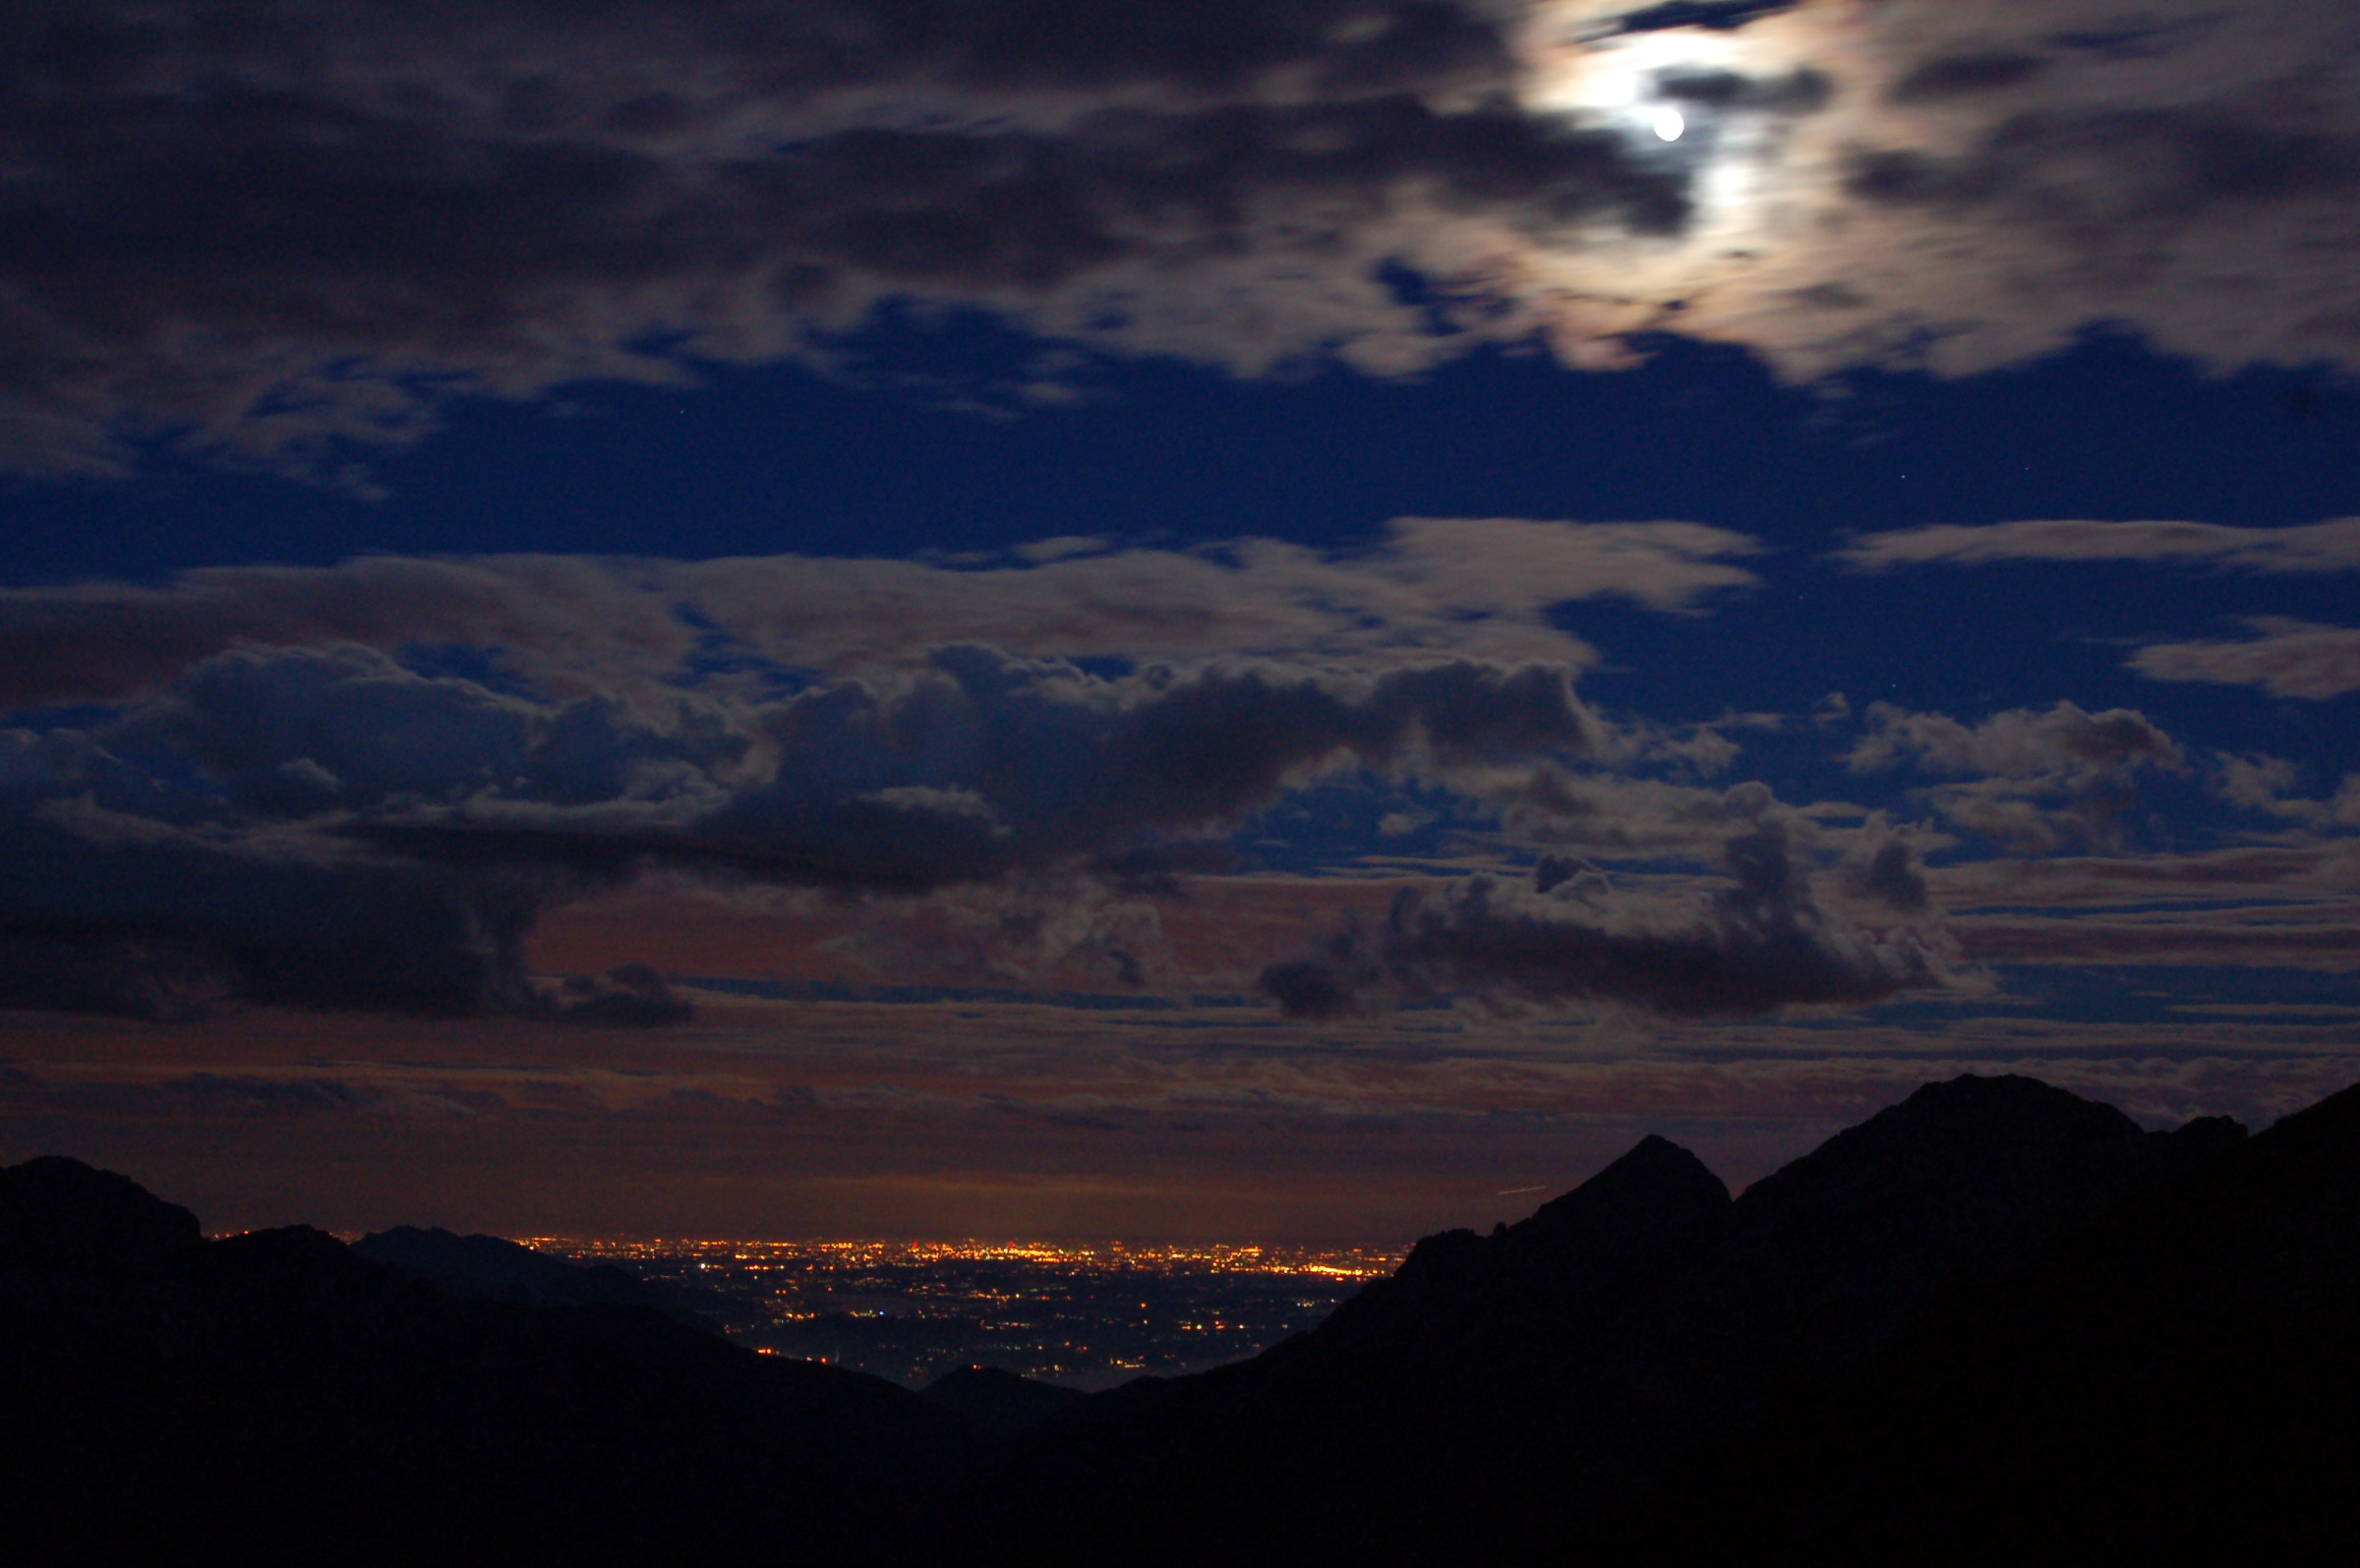 #Nocturne from the mountains to the city...